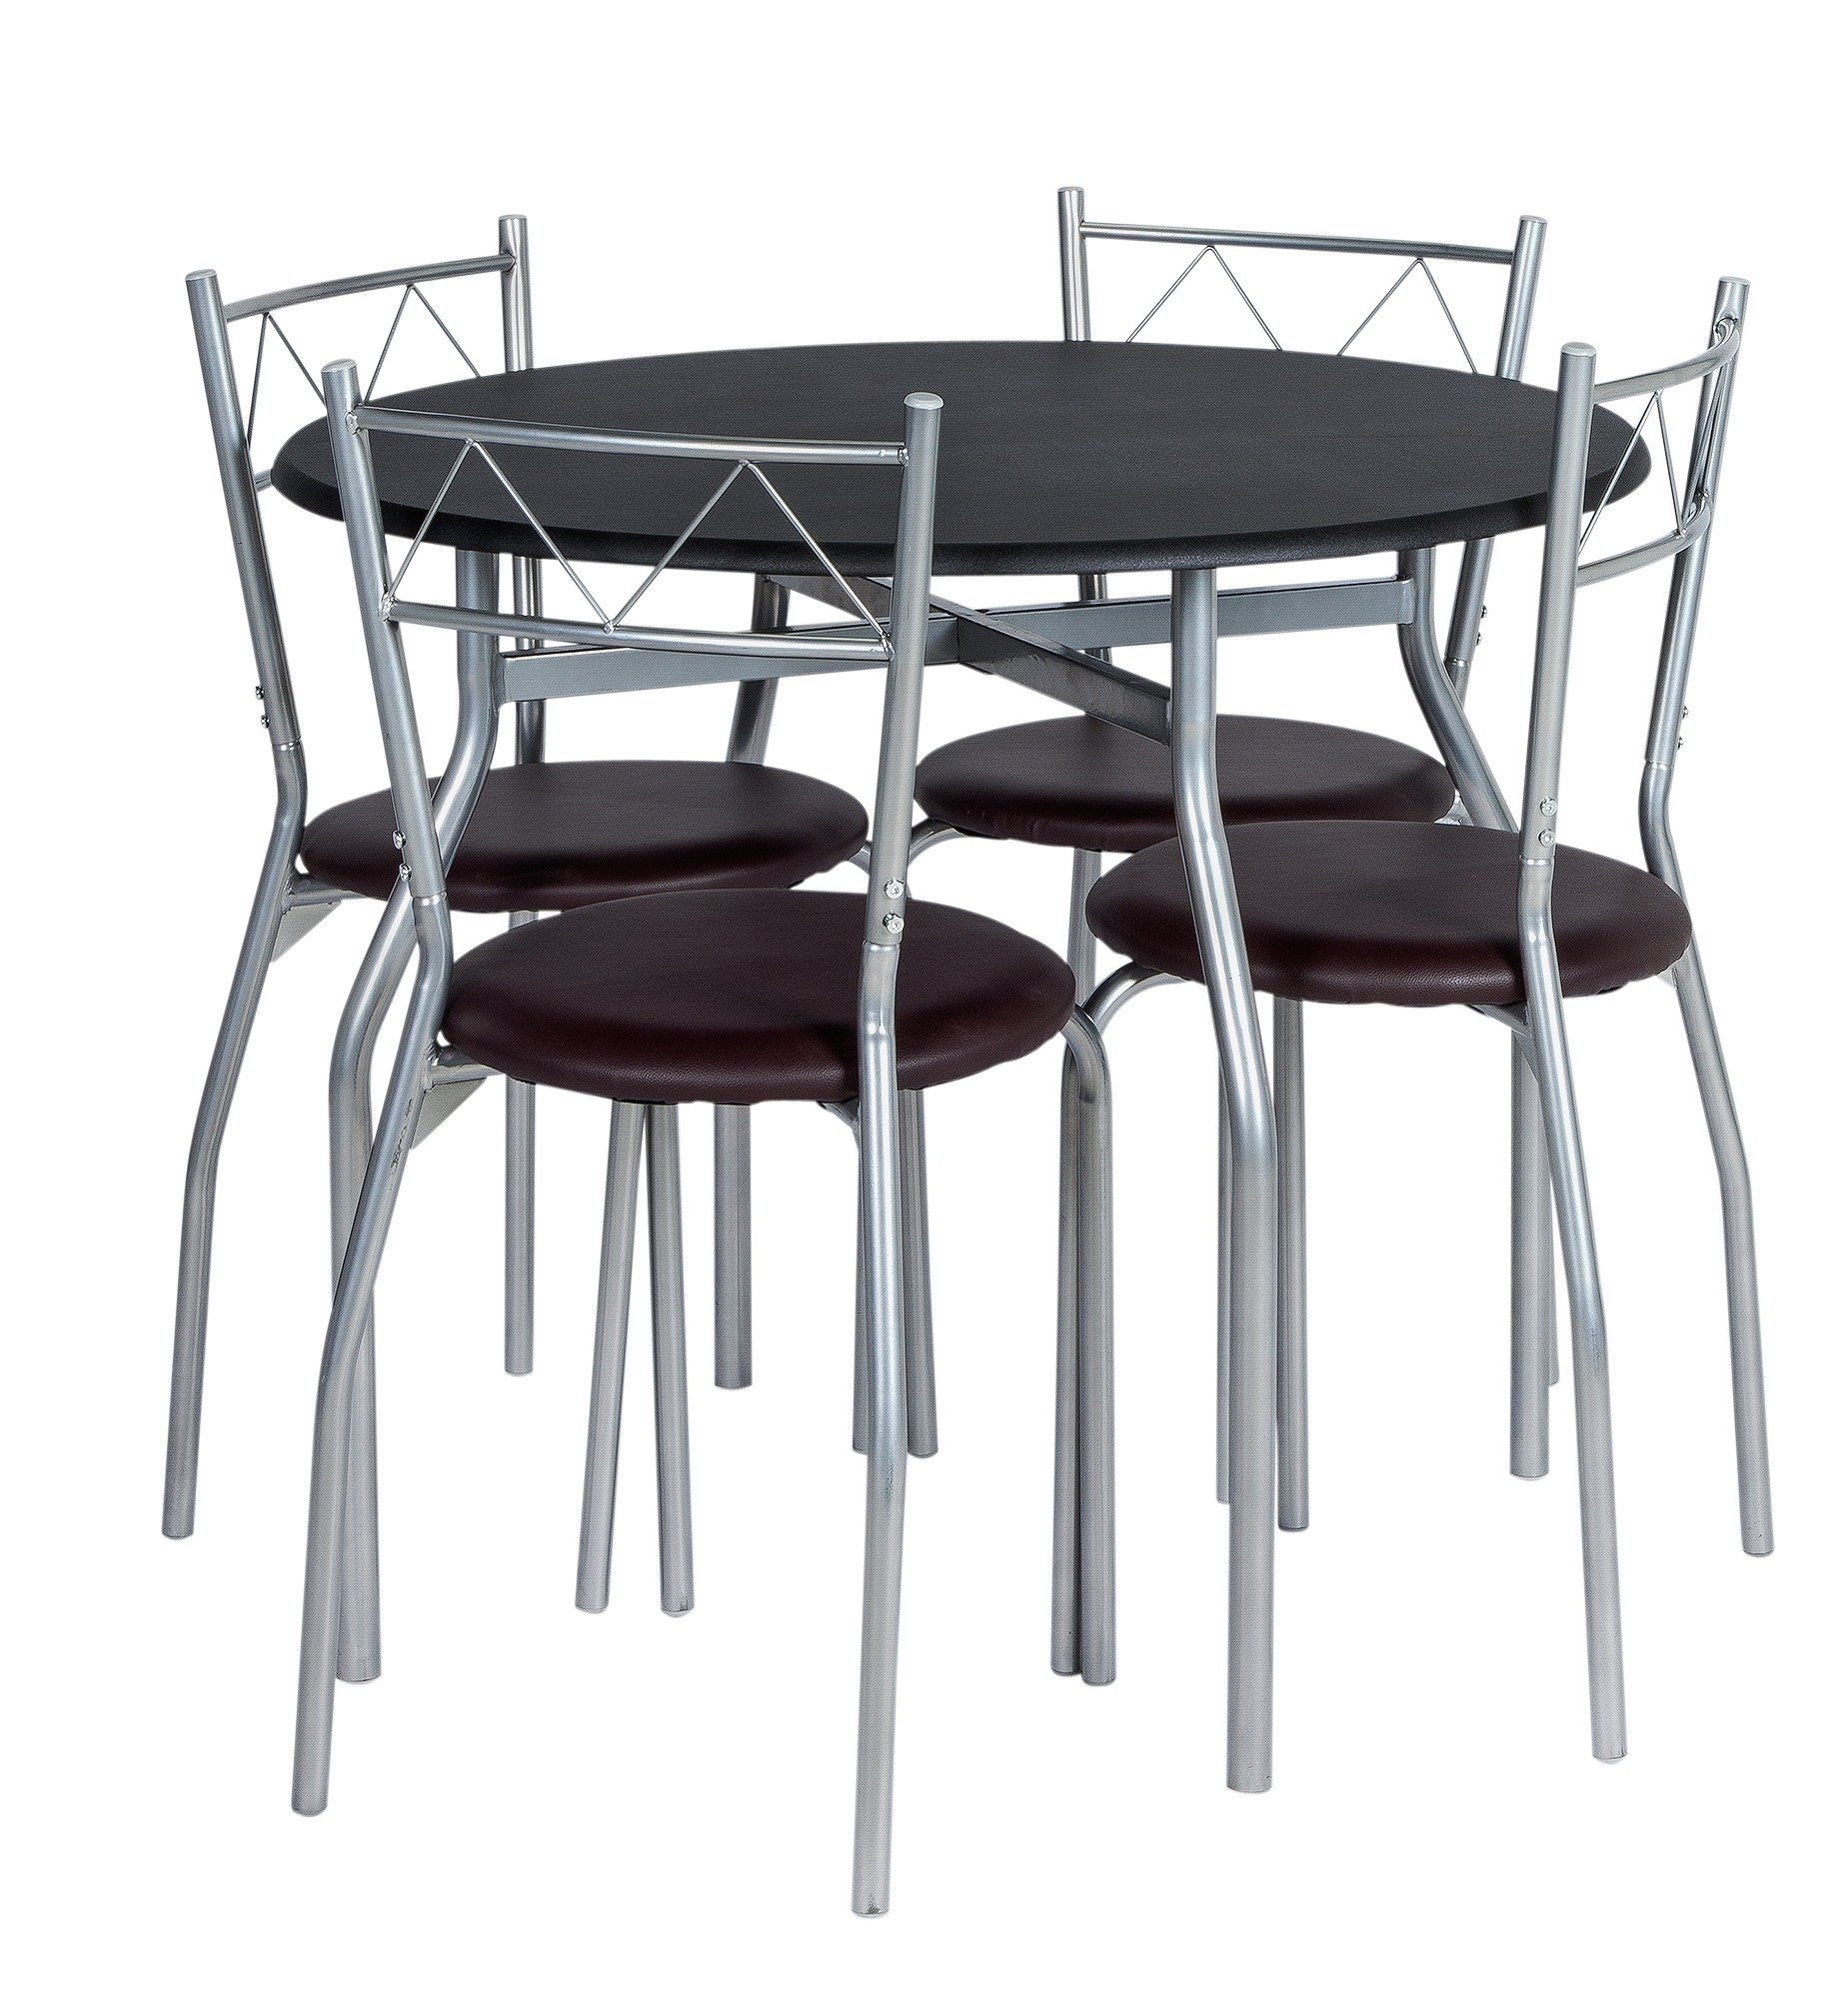 Buy HOME Oslo Round Dining Table   Chairs - Black at Argos.uk